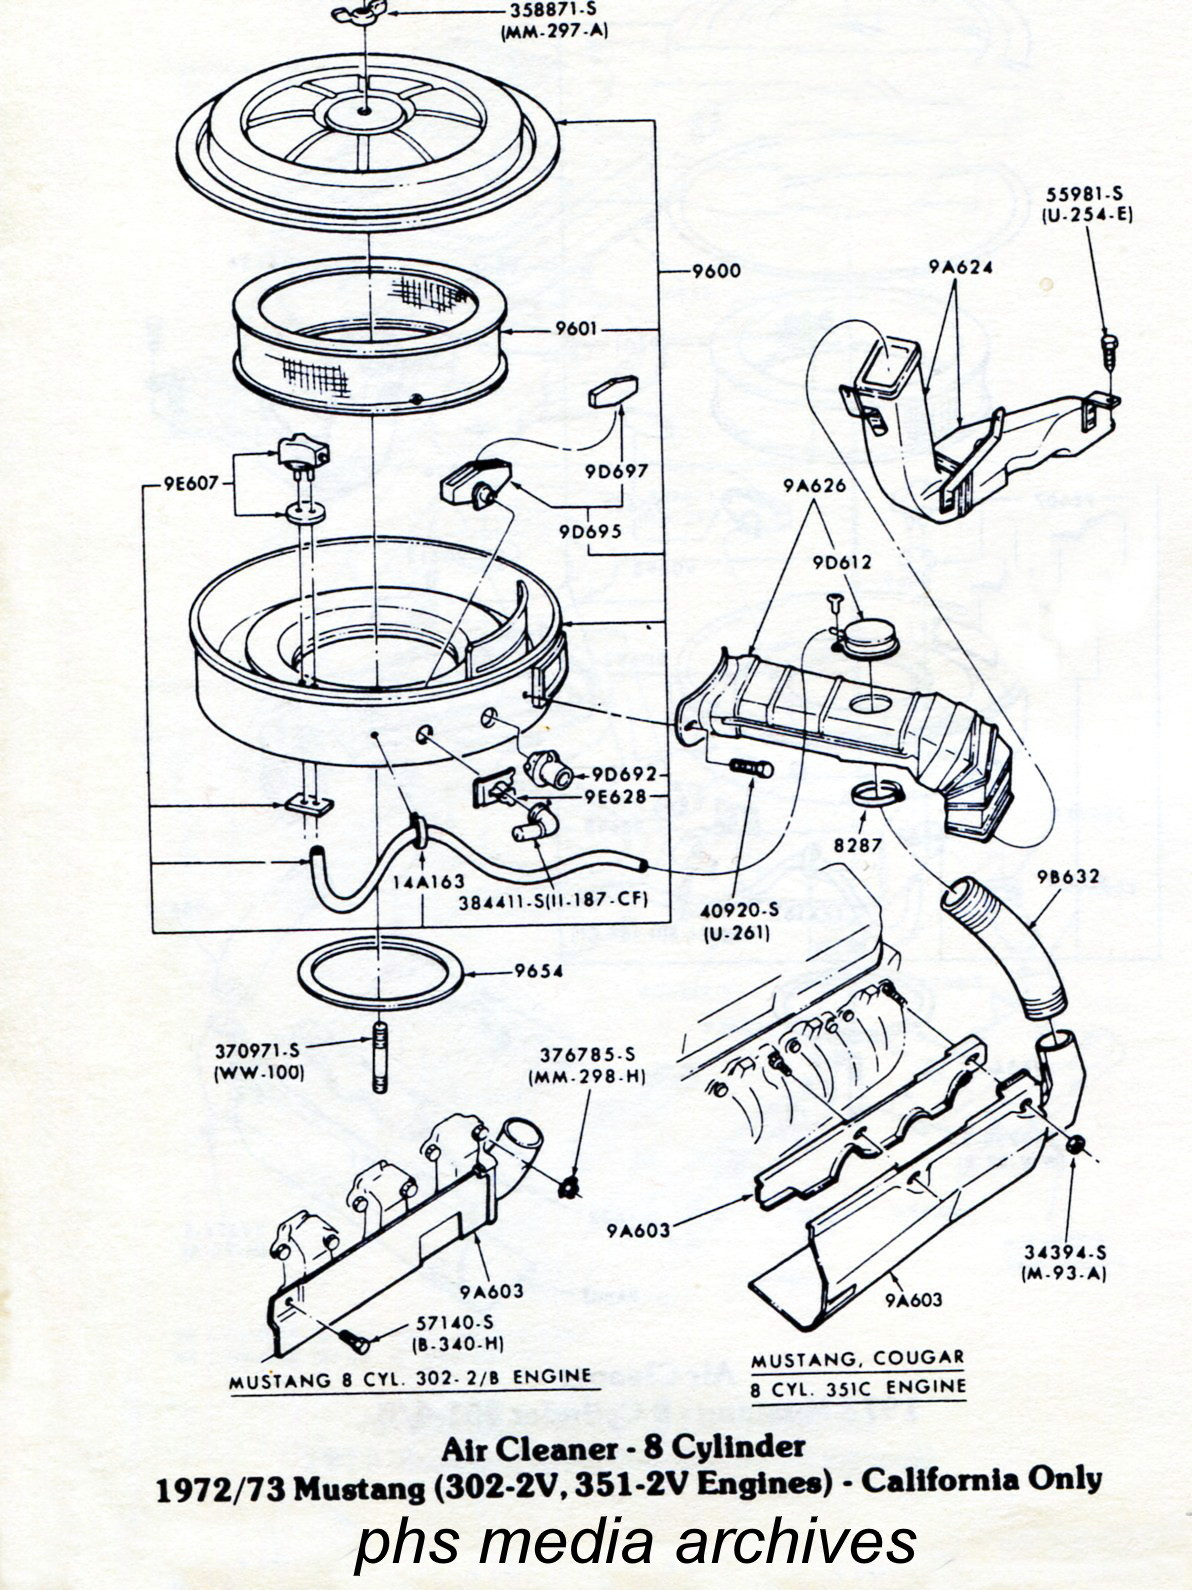 tech series ford mustang air cleaner id guide 1971 1973 Cobra 1979 Mustang Fastback the california state 302 and 351 2v engine air cleaner assembly is shown below california engines differ primarily in state of tune with distributor